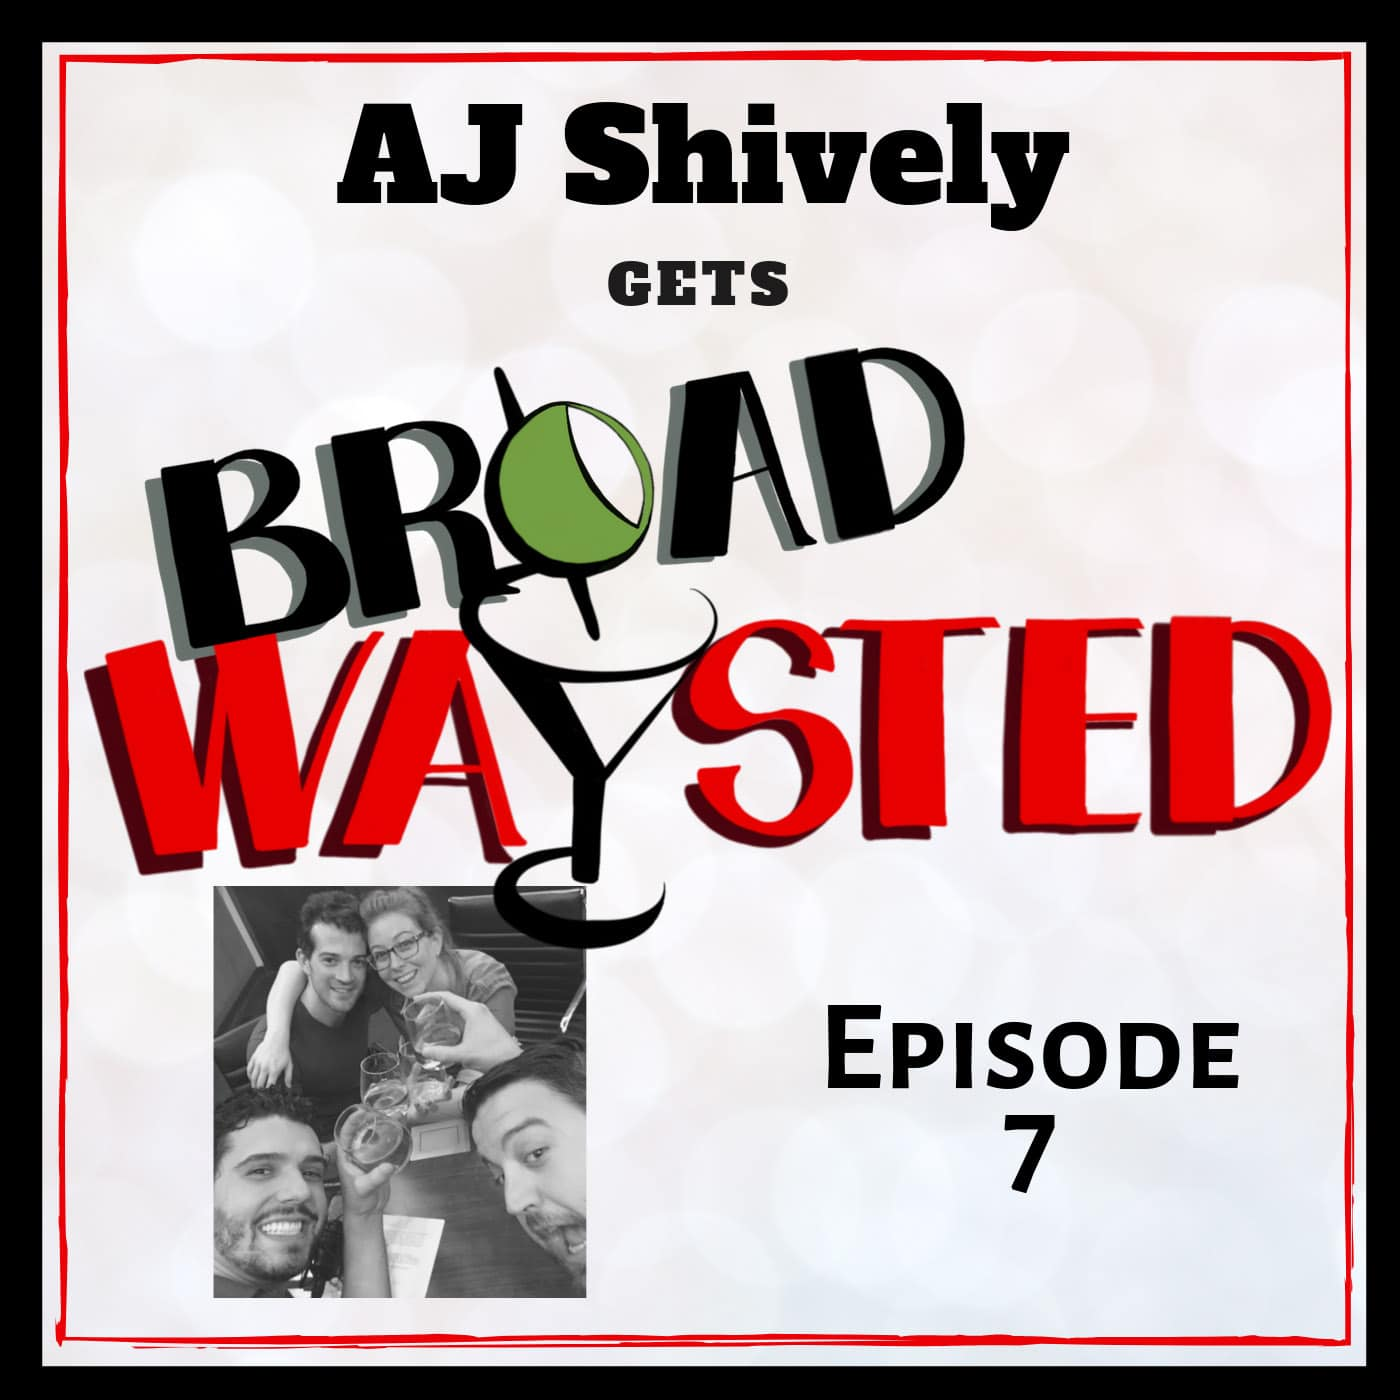 Broadwaysted Ep 7 AJ Shively